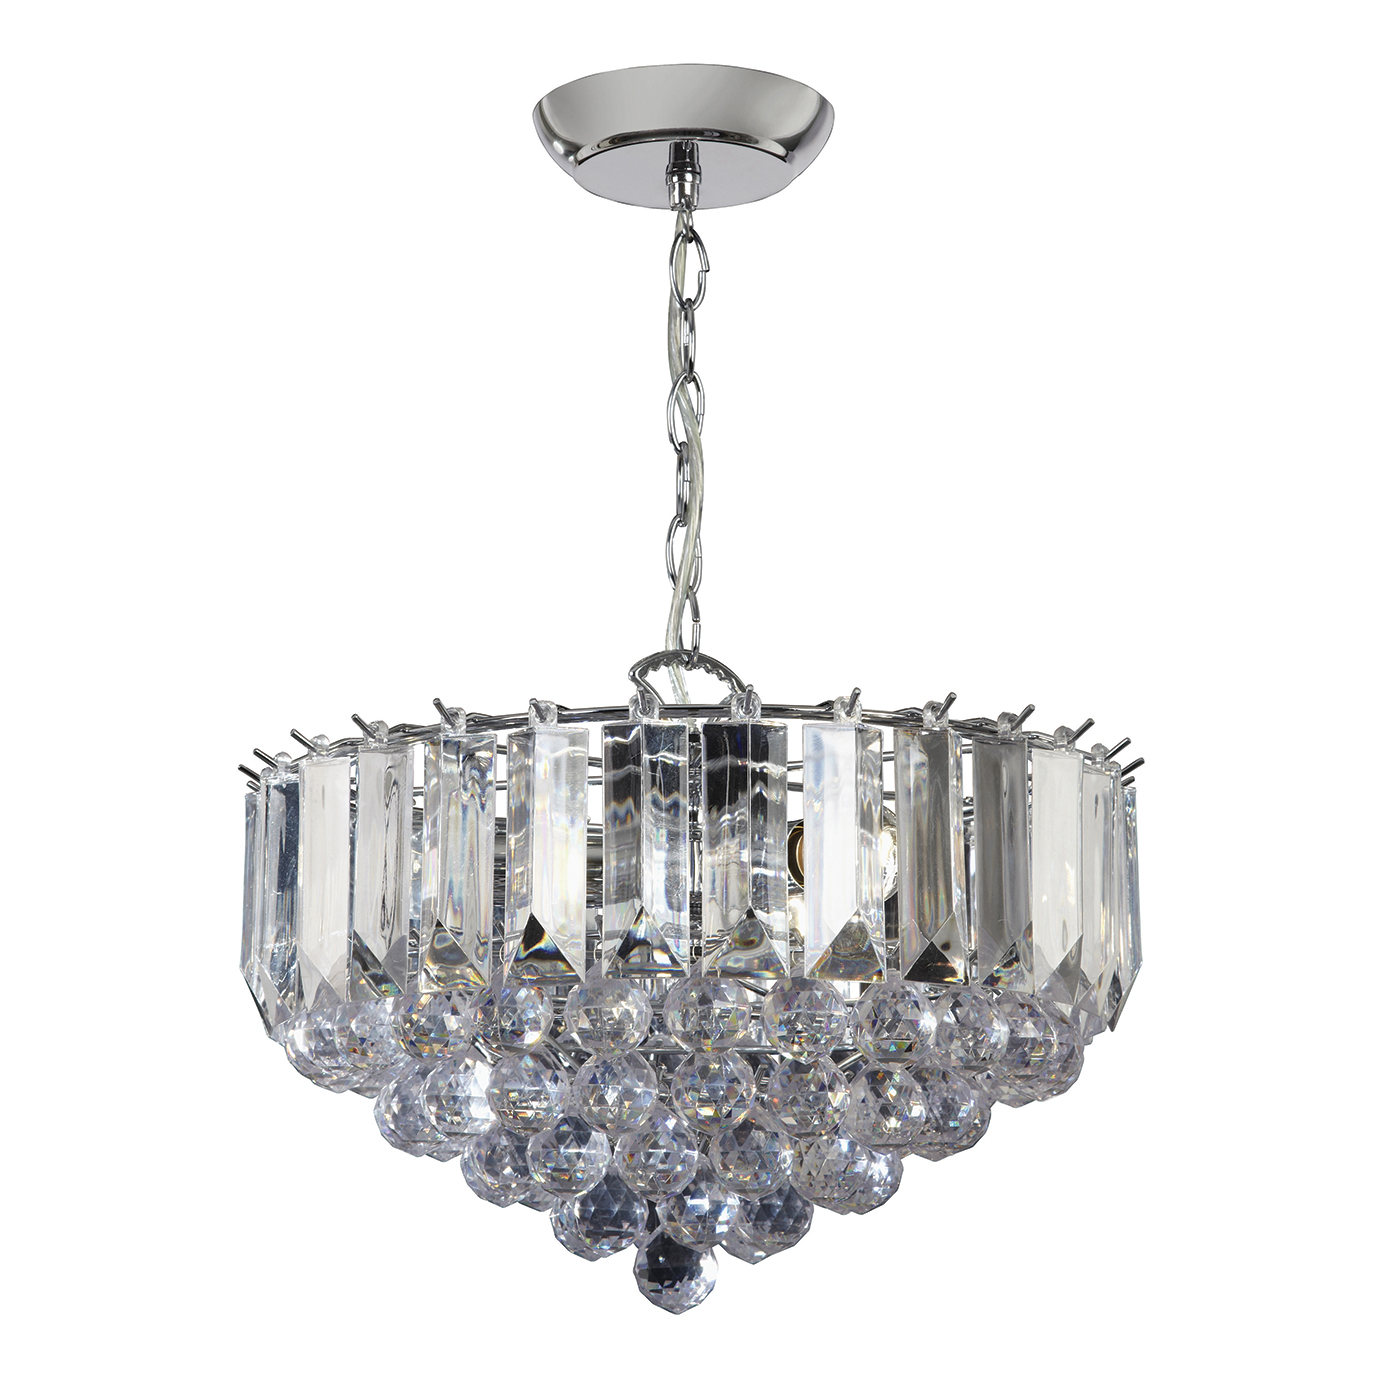 Endon Fargo chandelier 3x 60W Chrome effect plate & clear acrylic Thumbnail 1